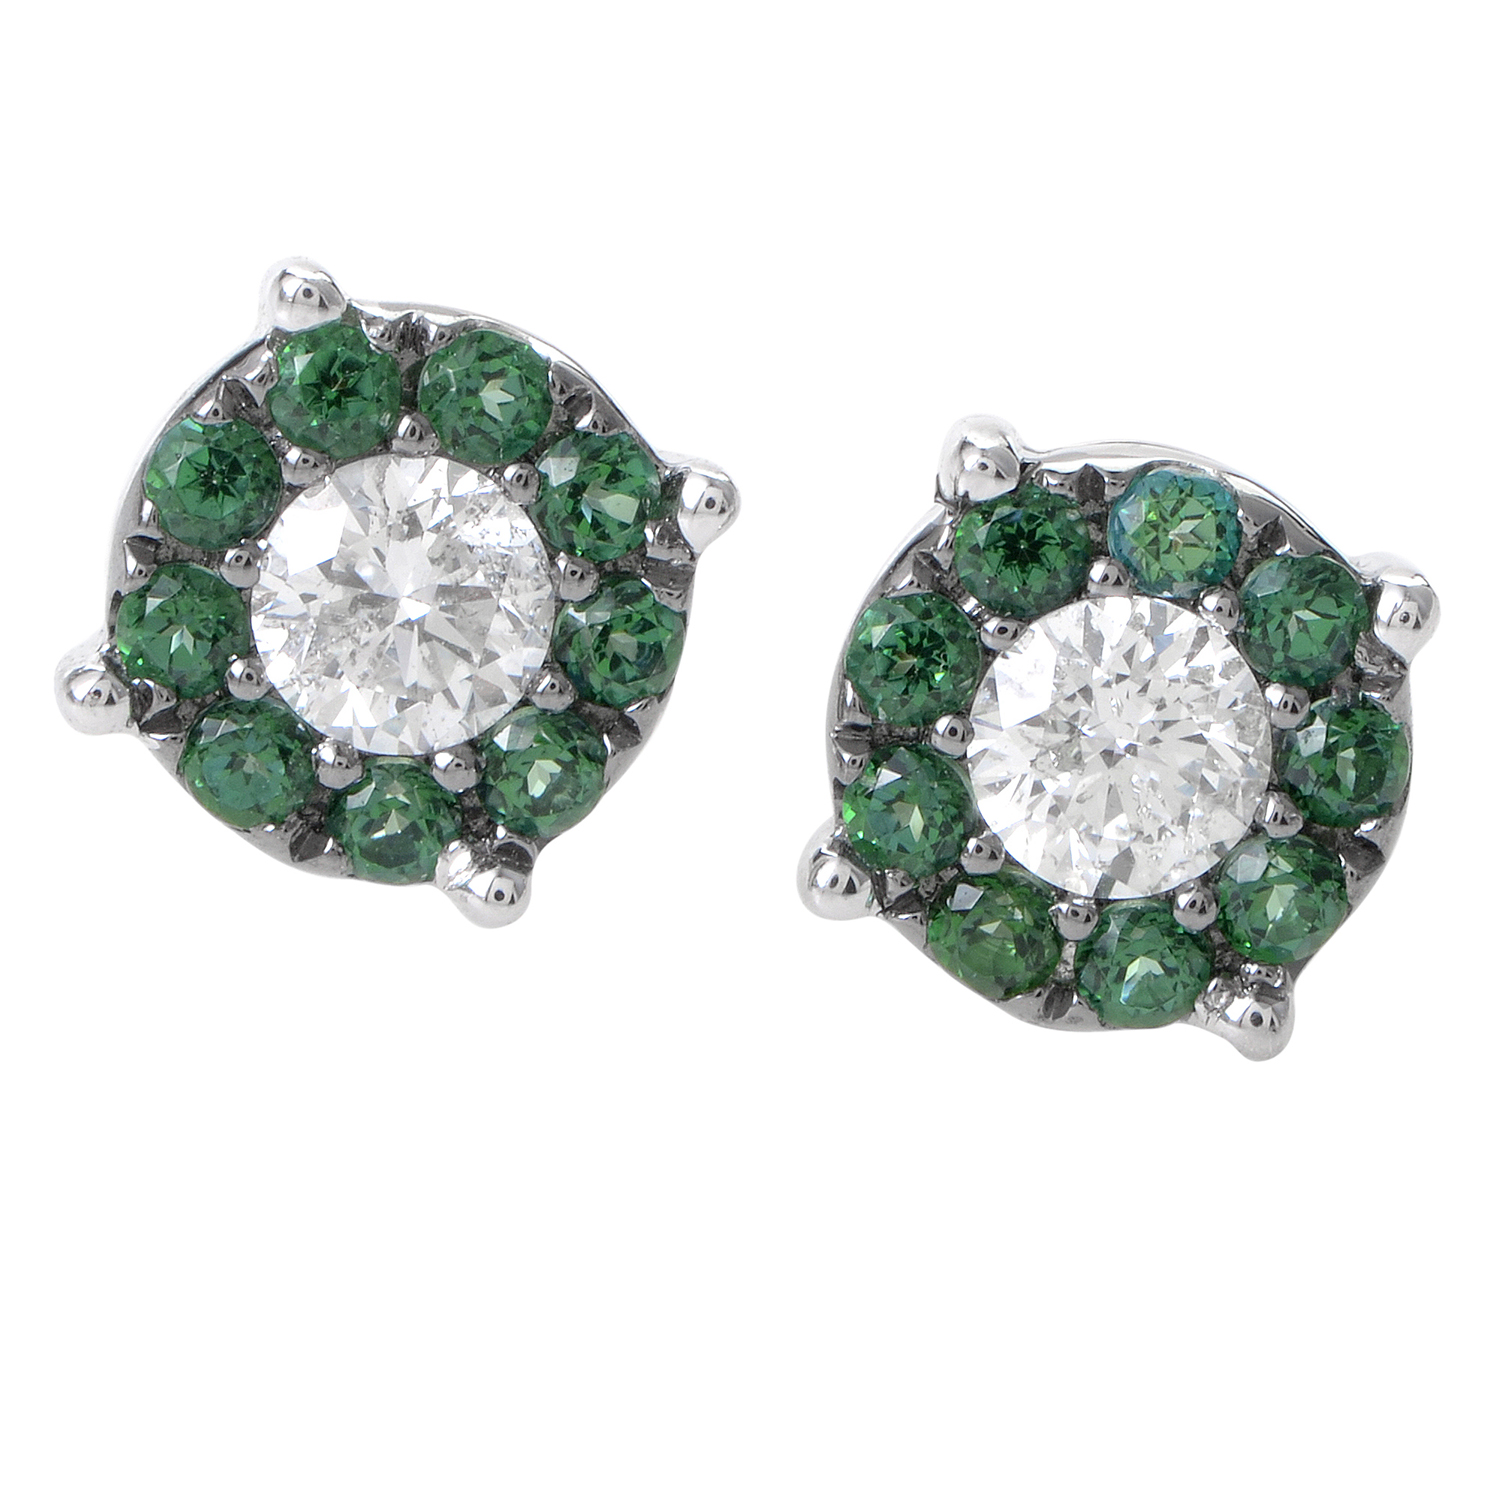 Women's 18K White Gold Diamond & Emerald Pave Stud Earrings